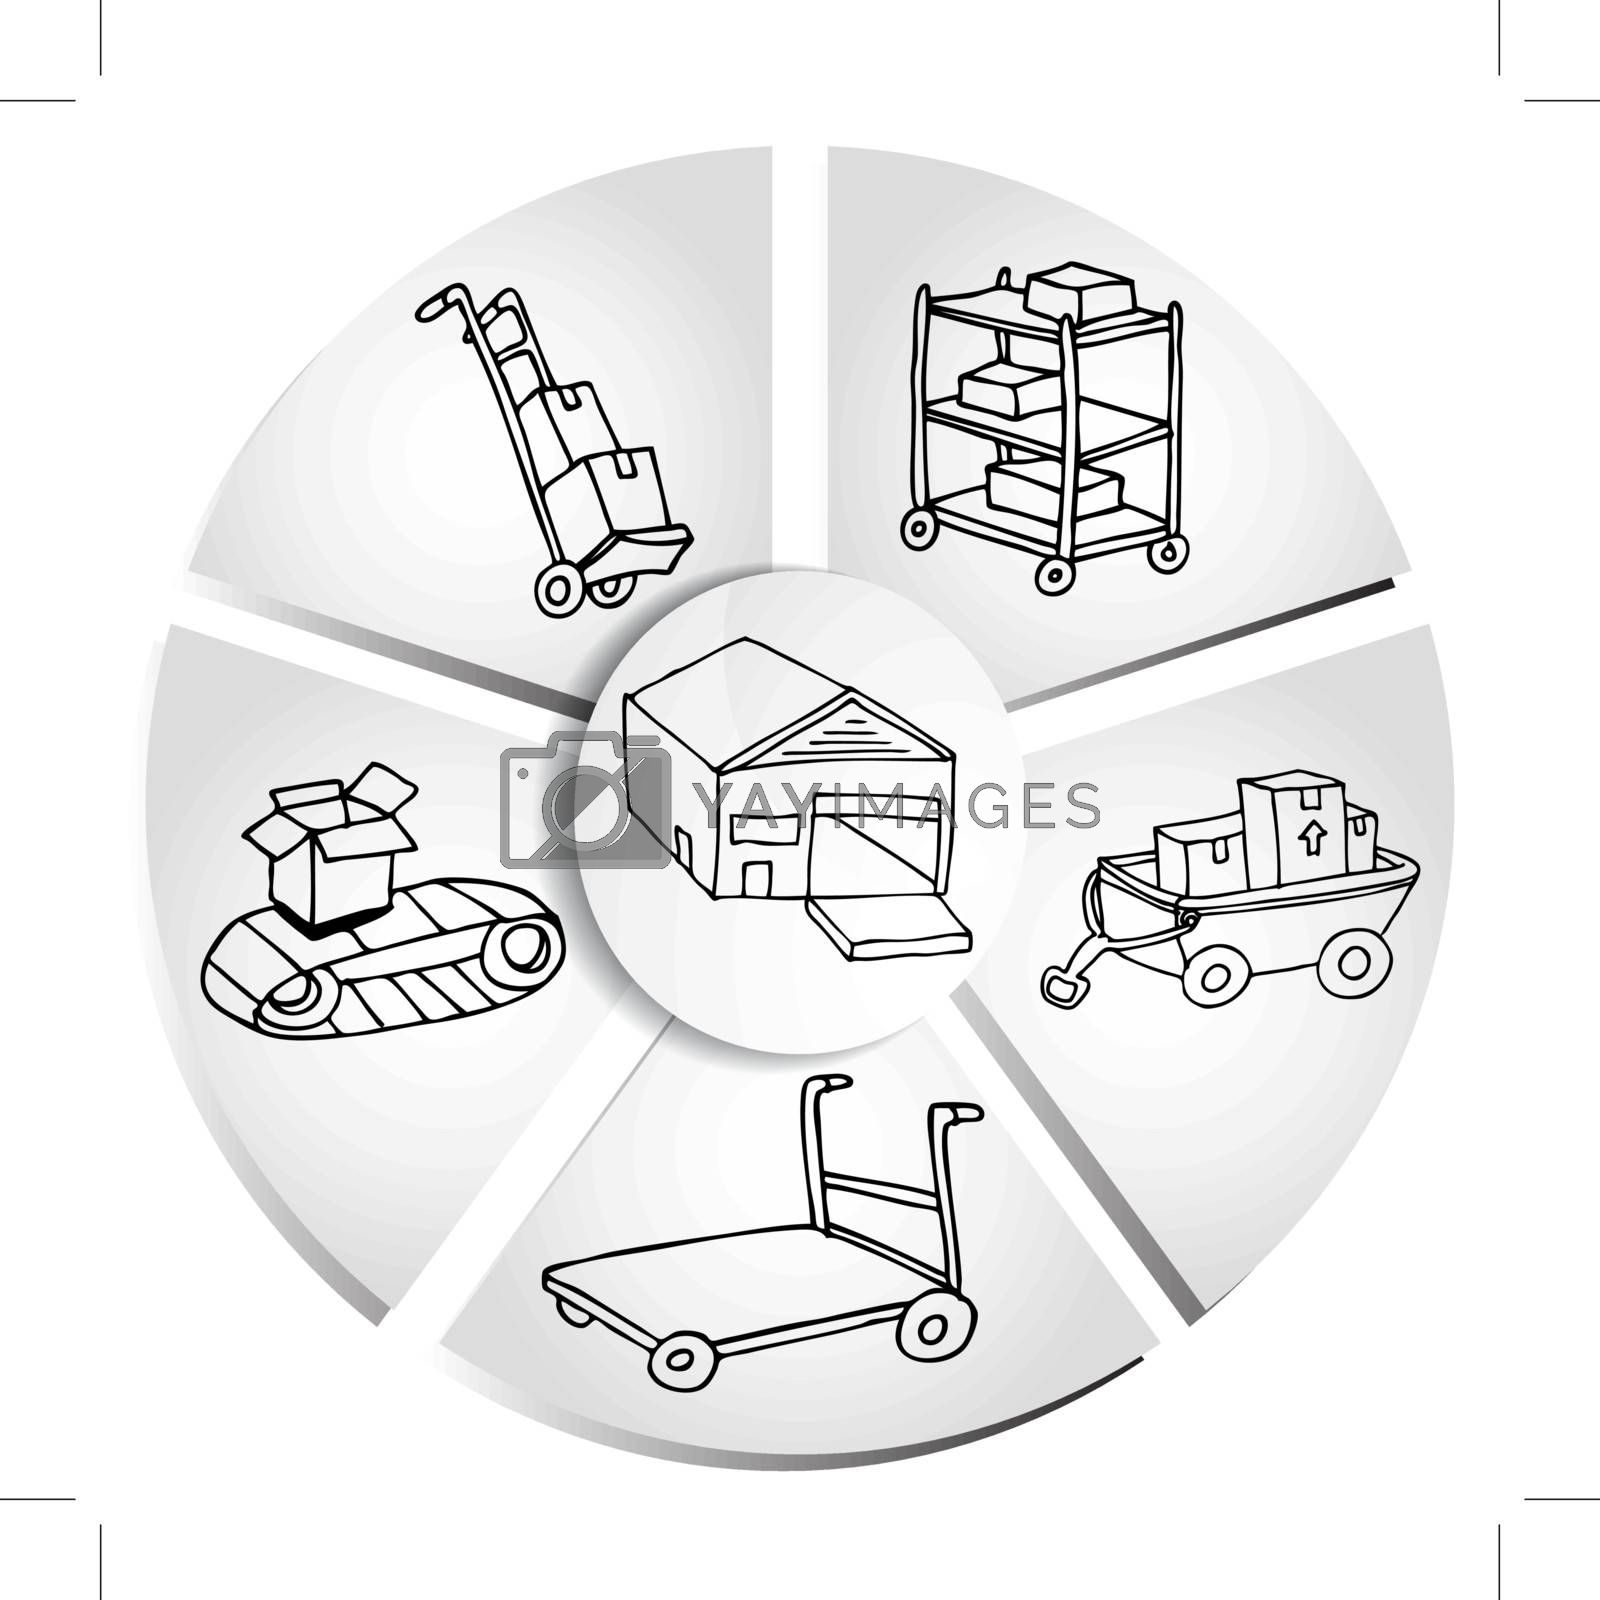 An image of a shipping box manufacturing chart.